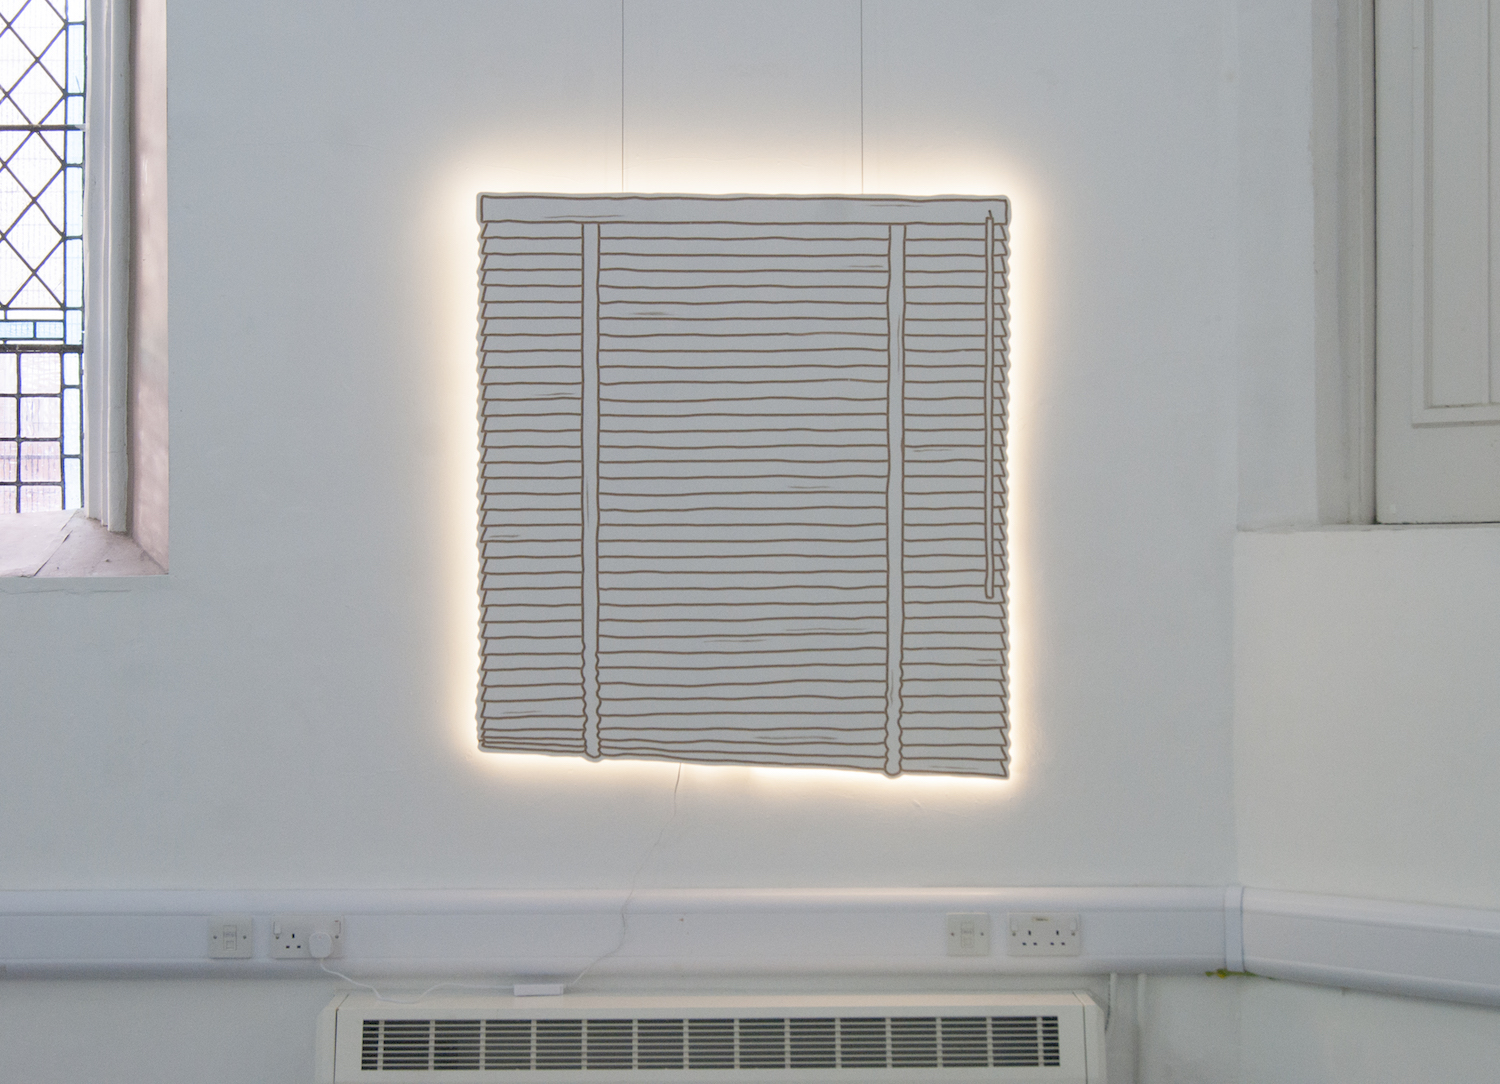 Milly Peck, Slatted Blinds At Dawn, 2019. Emulsion on board, LED lights. 110 x 120 x 3cm.